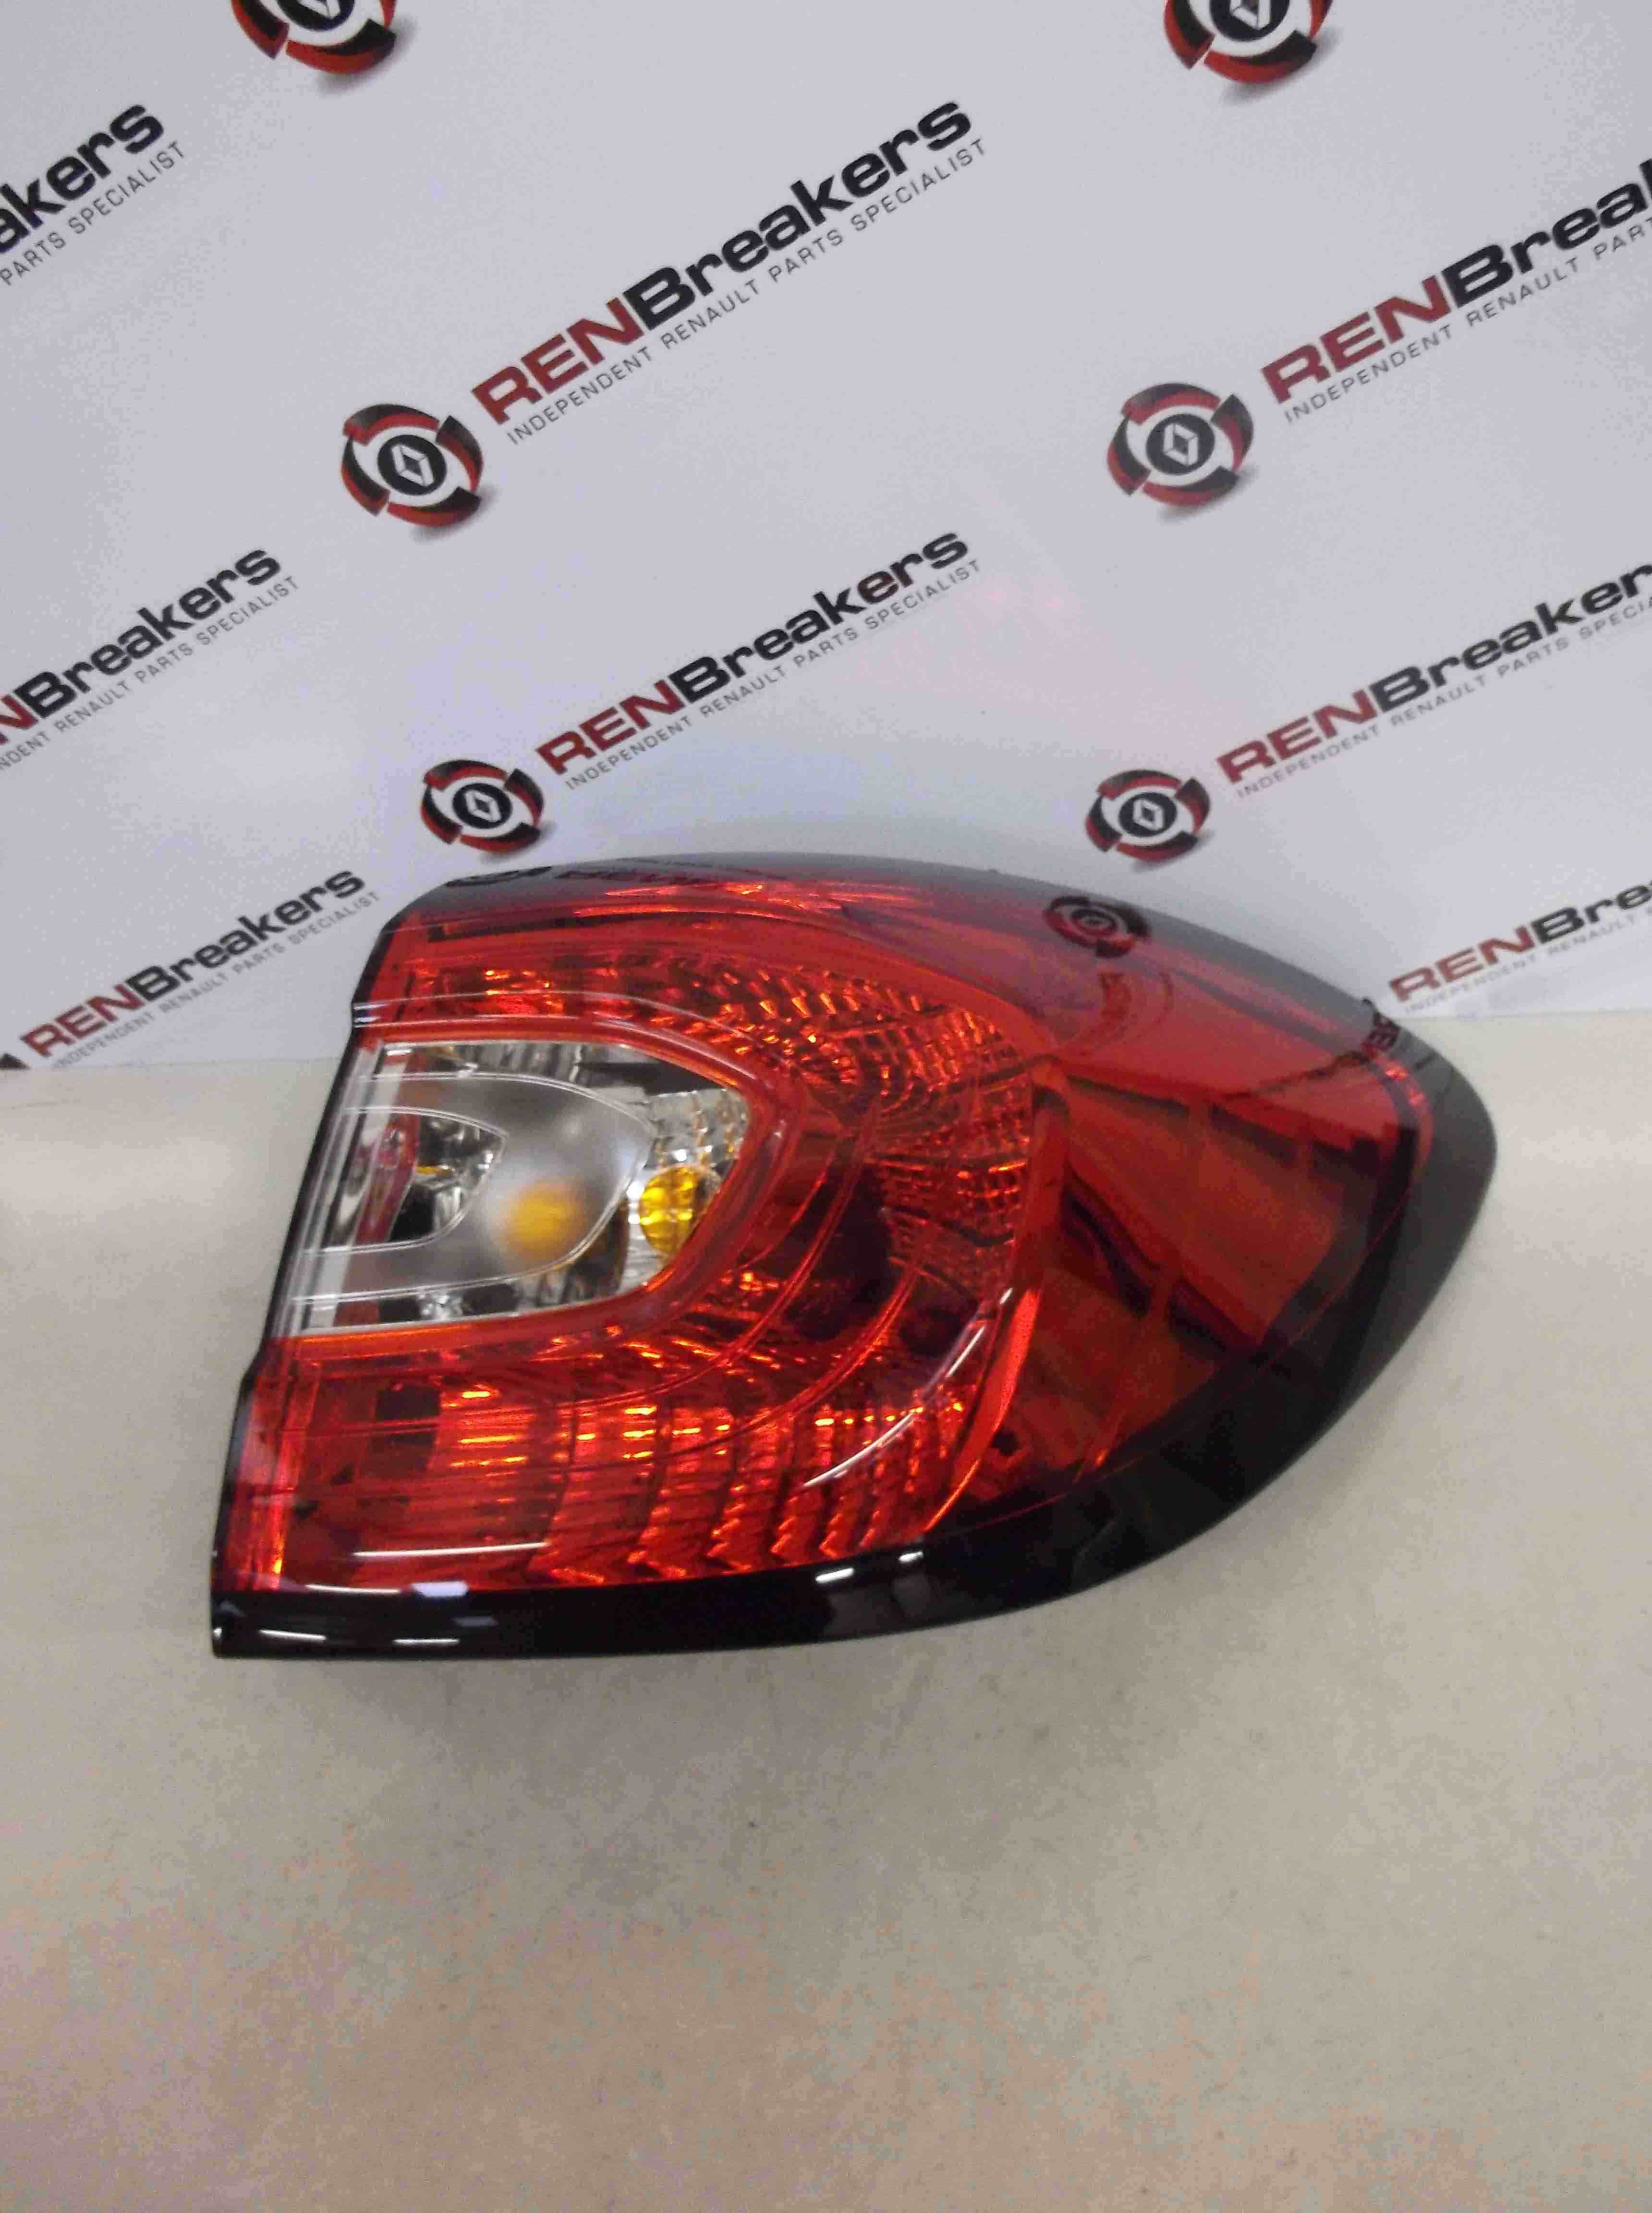 Renault Captur 2013-2015 Drivers OSR Rear Light Lenz Body 265509762r